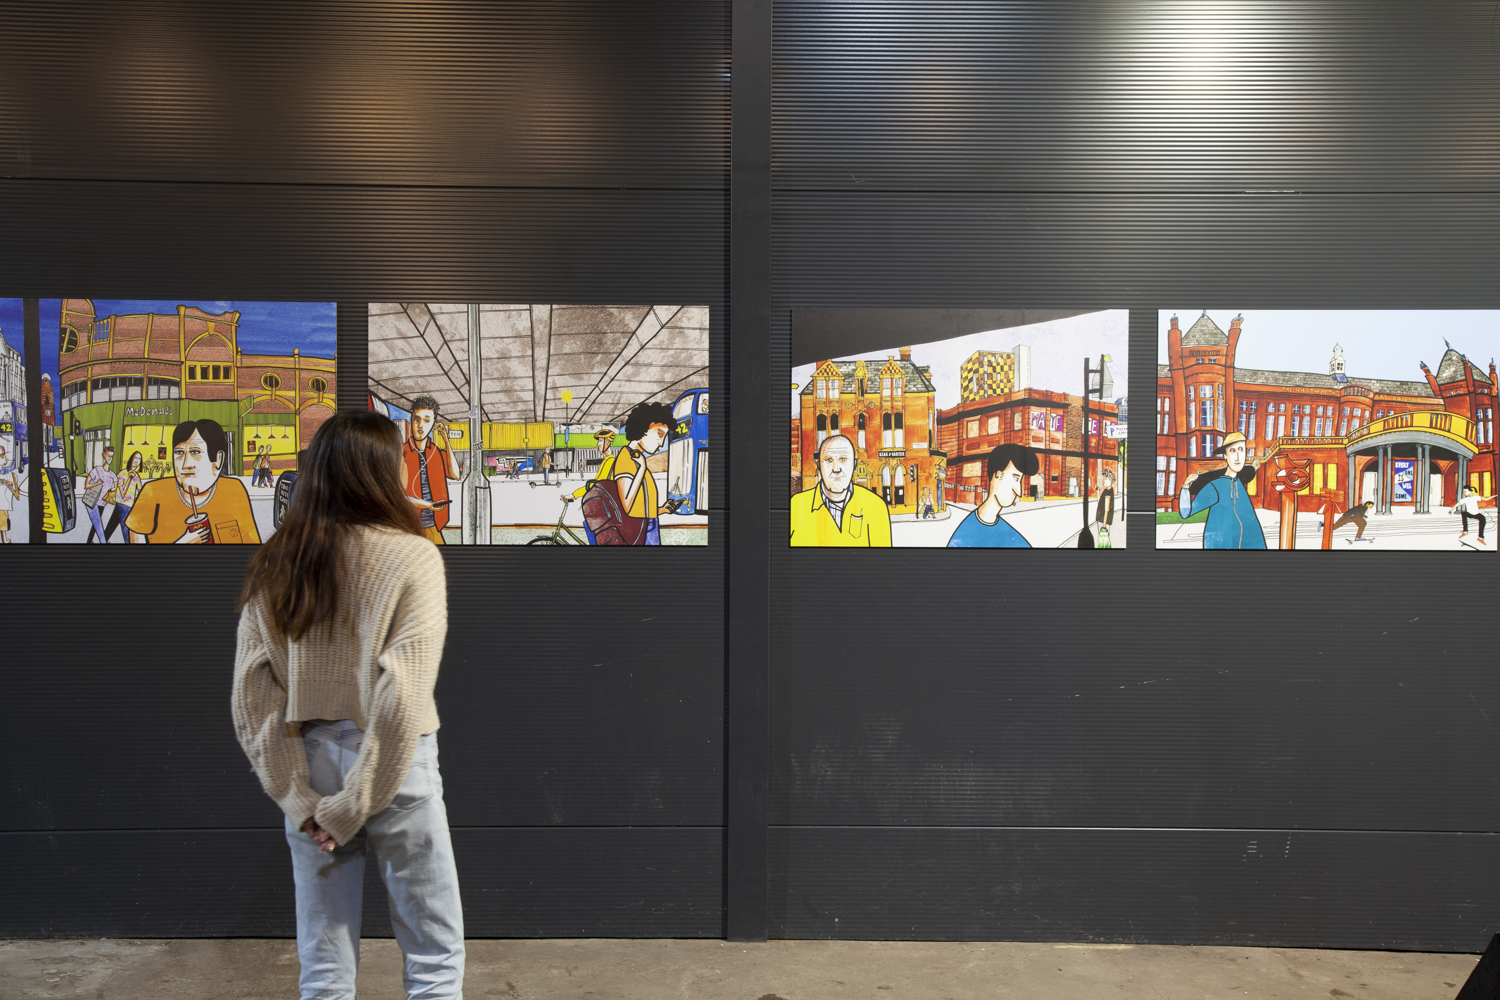 'I've missed you, too': The eye-catching artwork series rejoicing in Manchester's return, The Manc